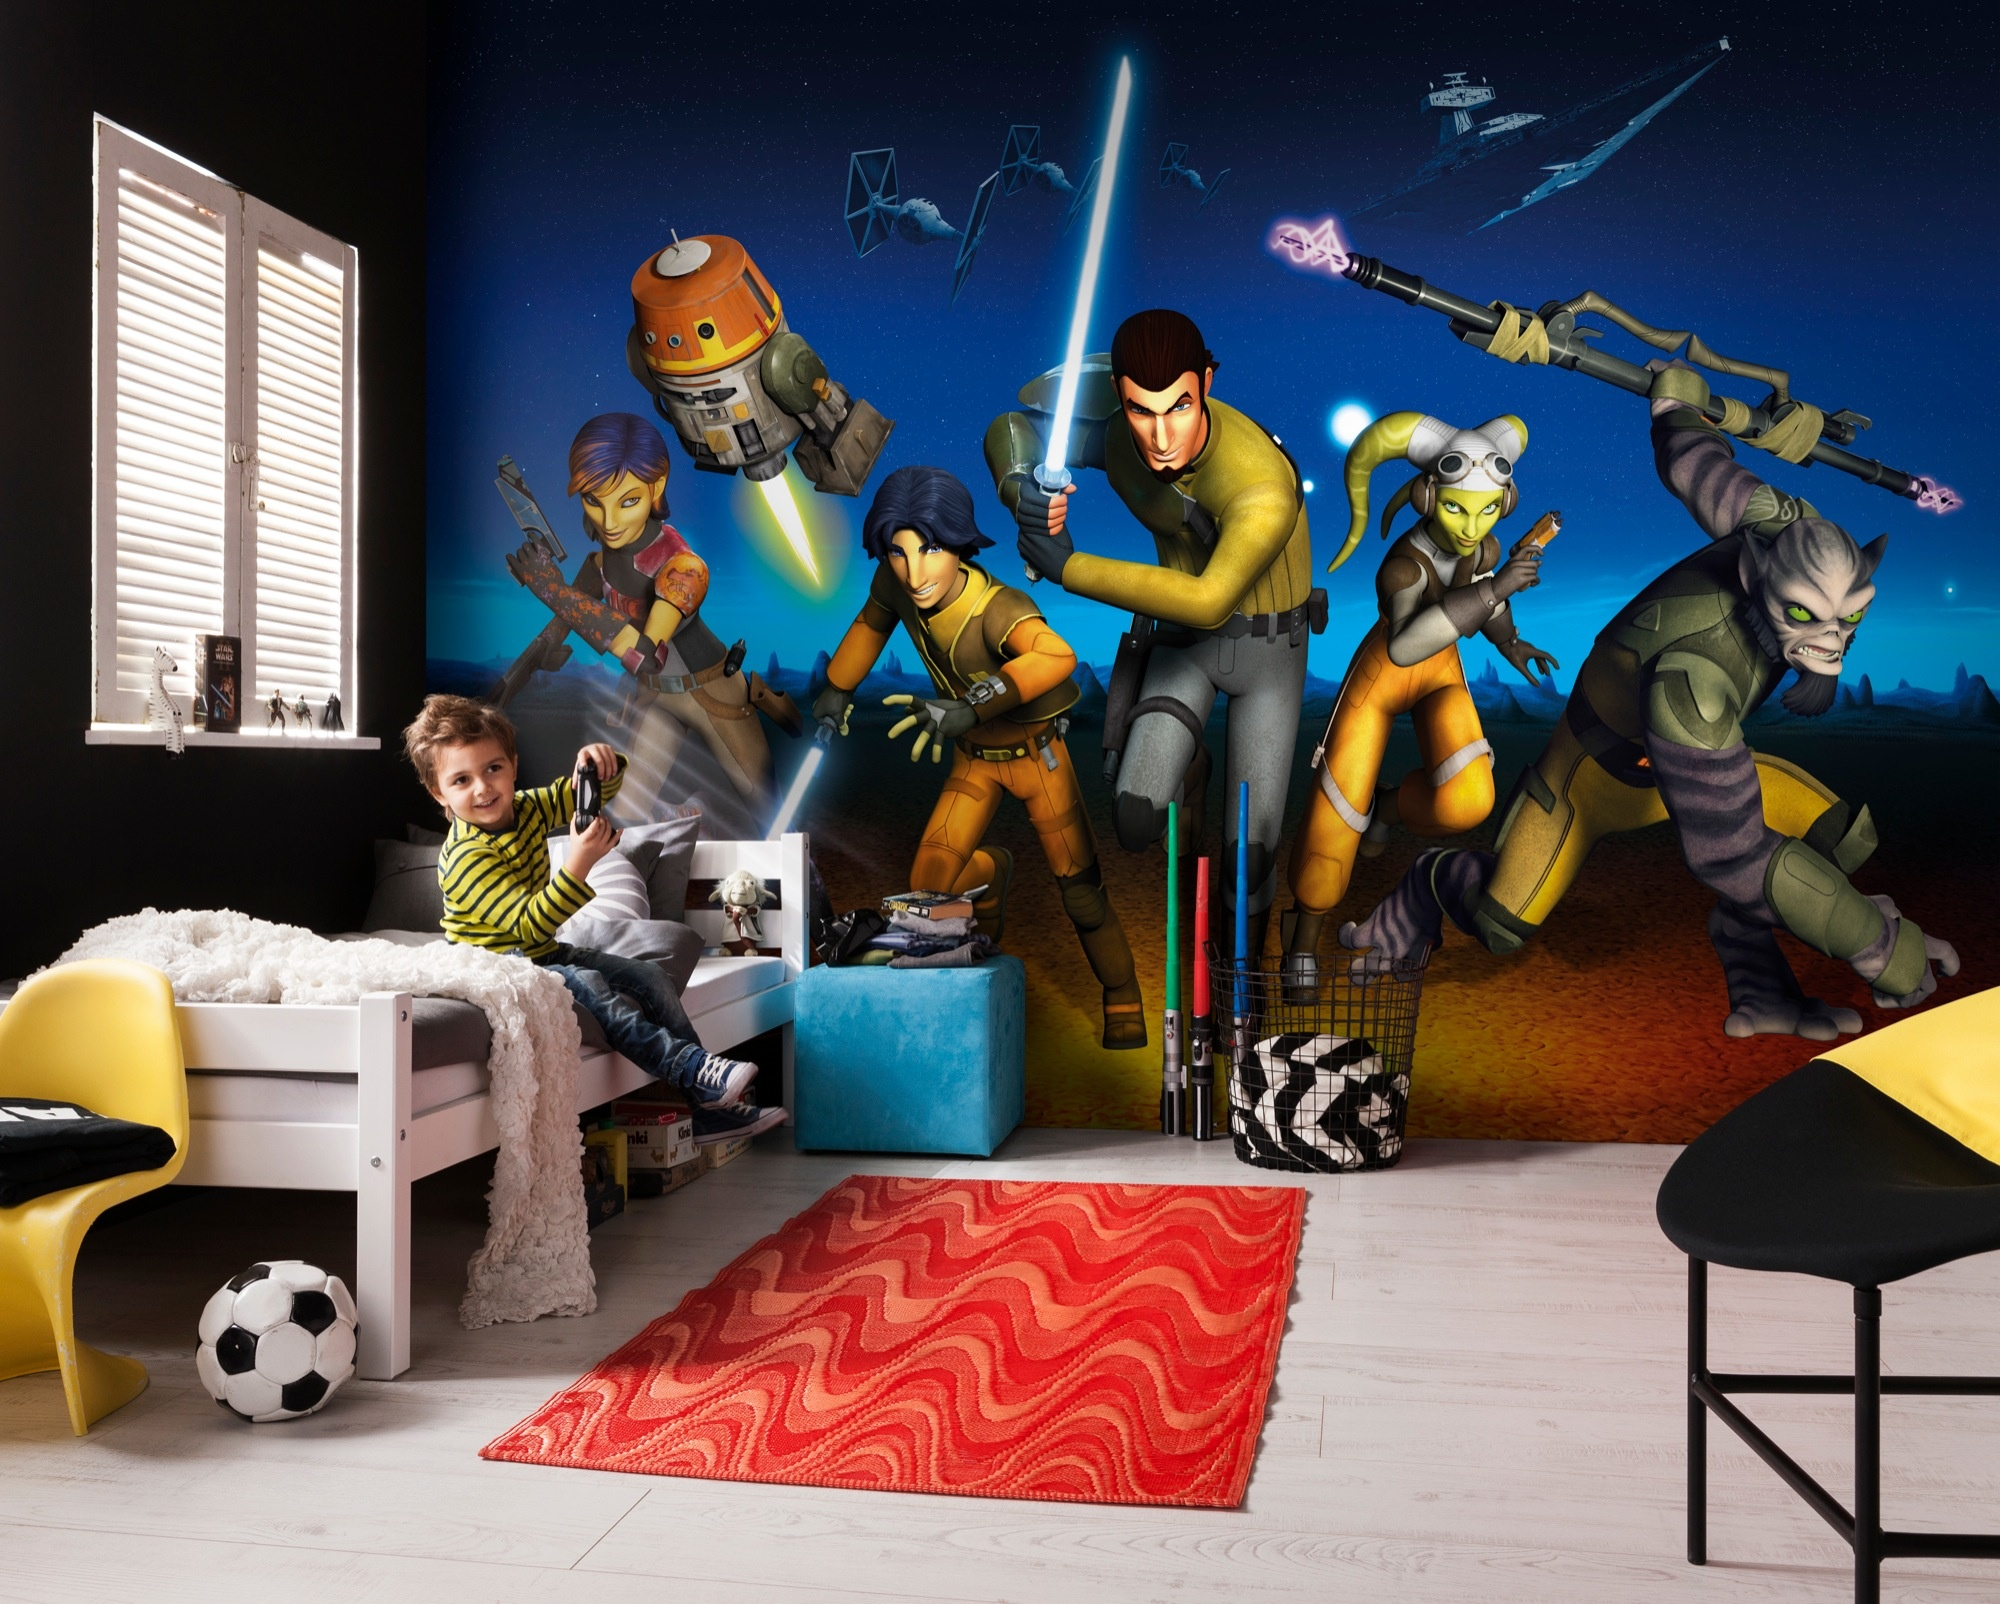 Disney Edition 4 Kinderbehang Komar - Kinderkamer behang  STAR WARS REBELS RUN